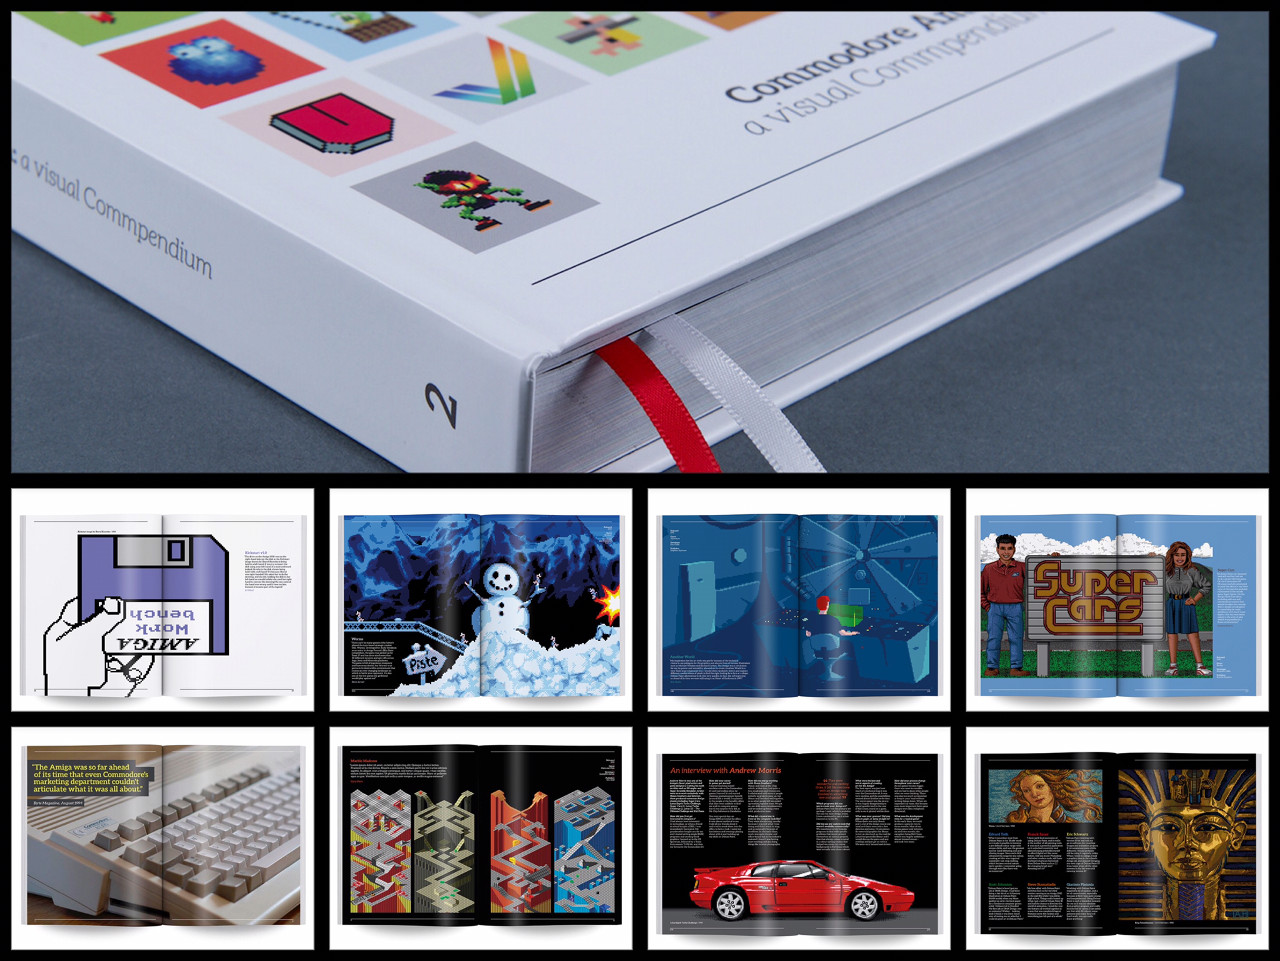 Commodore Amiga: a visual Commpendium (Bild: Bitmap Books)